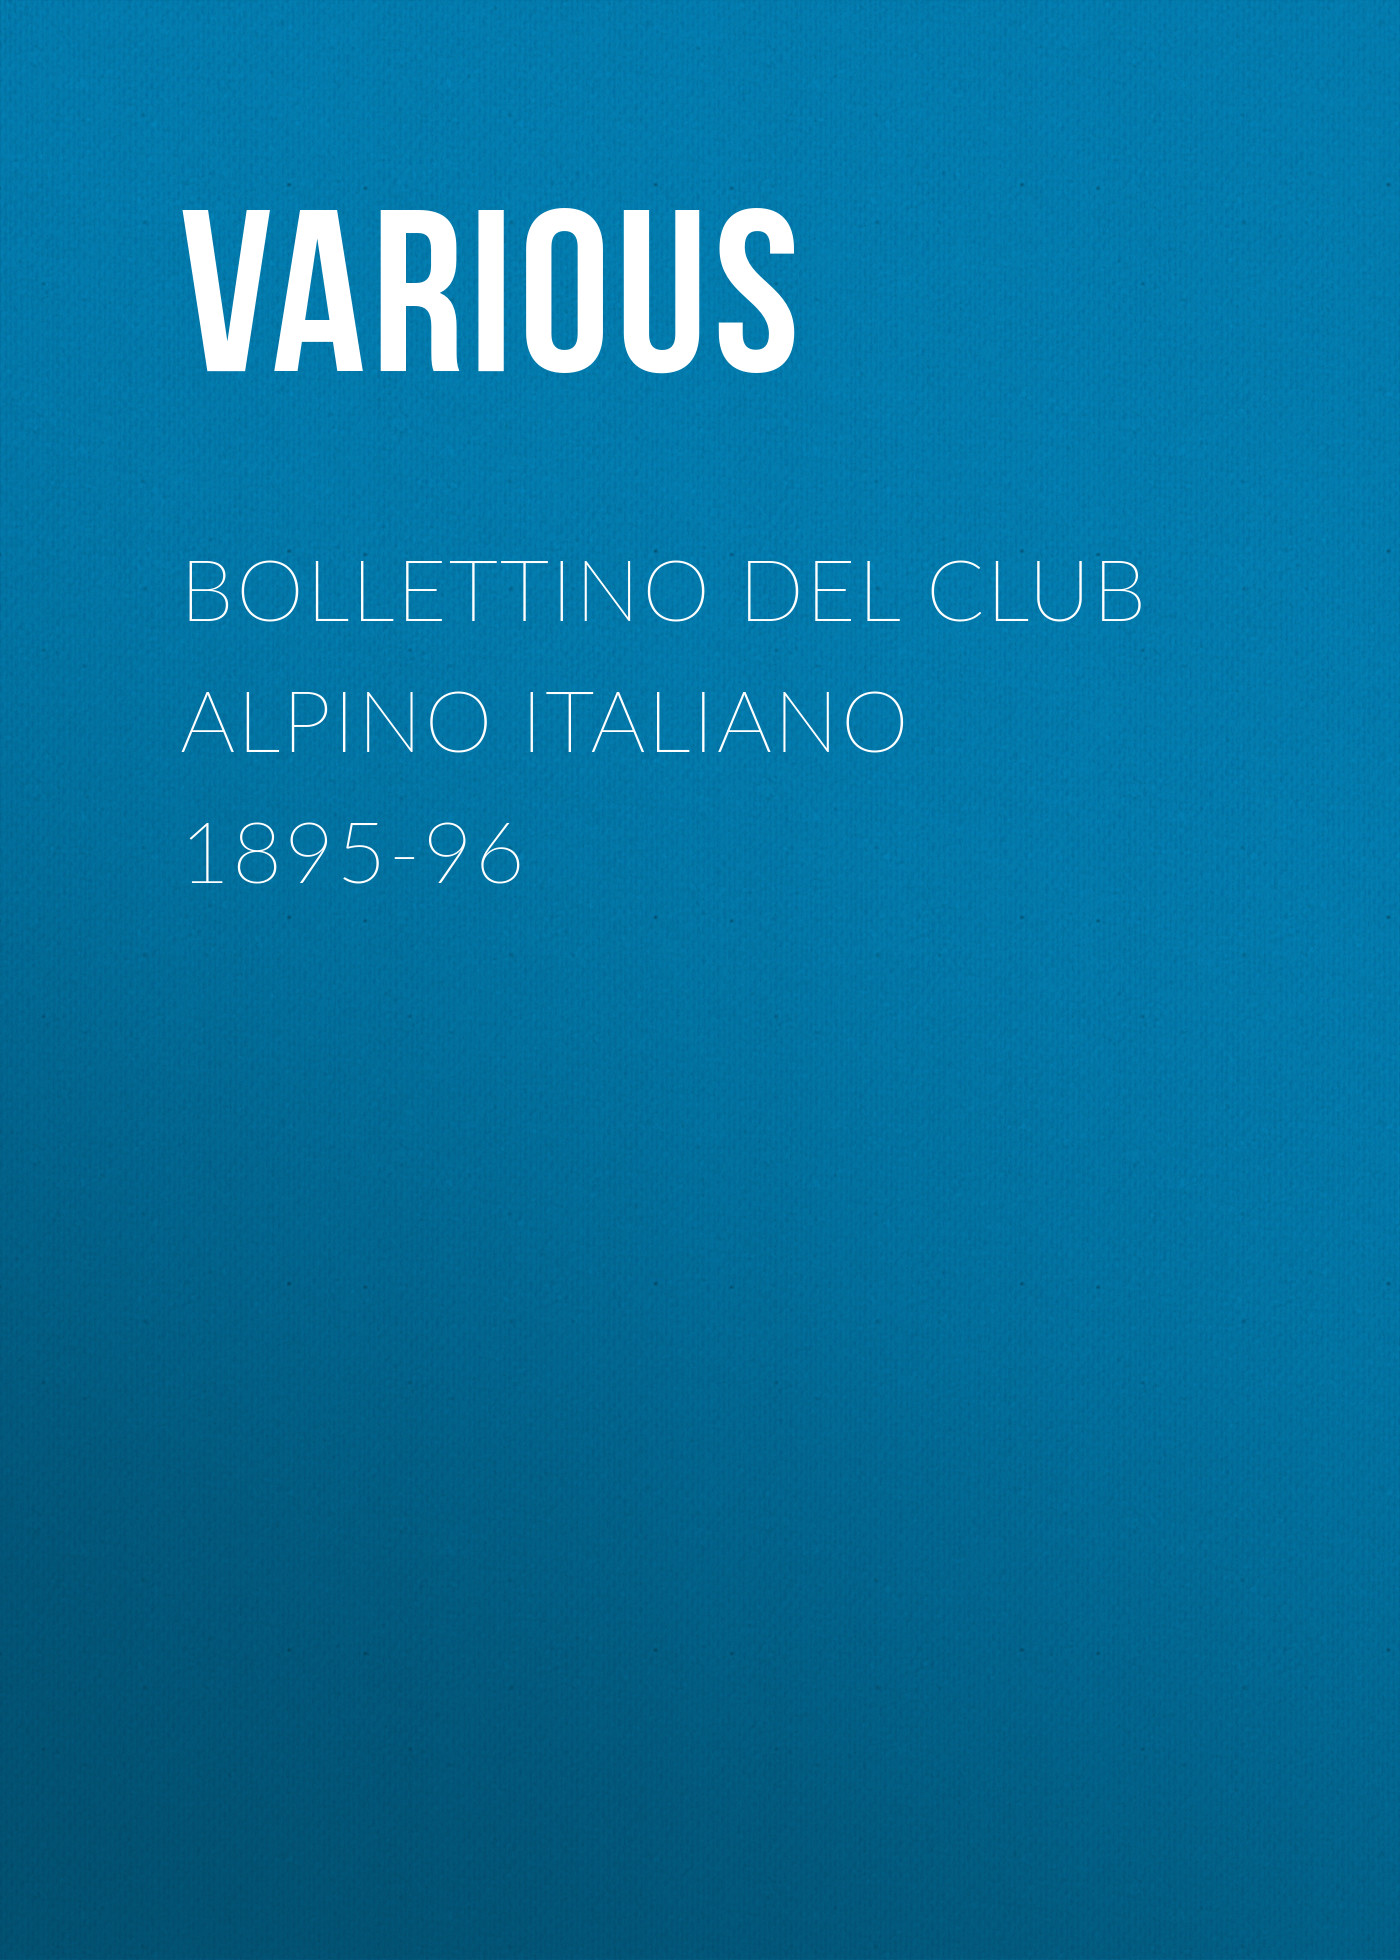 цена на Various Bollettino del Club Alpino Italiano 1895-96